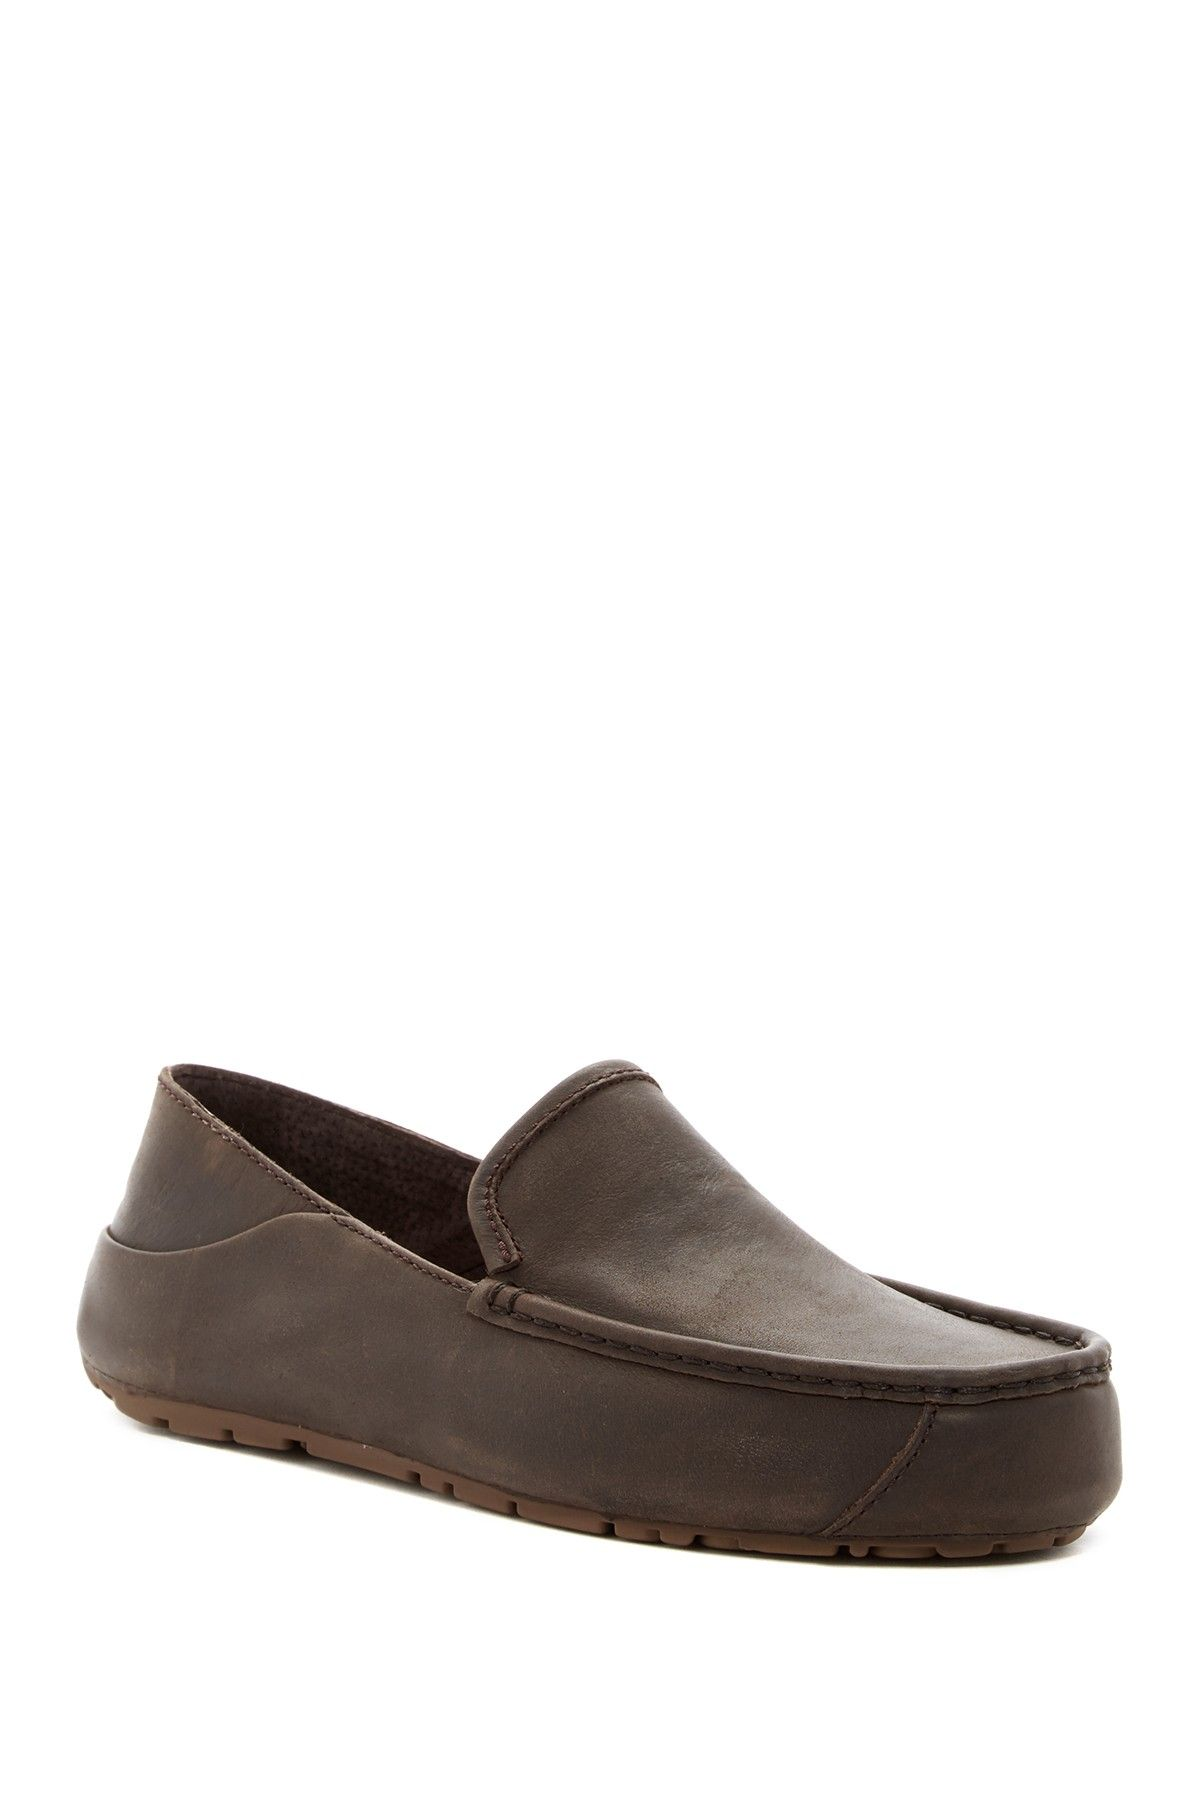 2b90867b547 UGG | Hunley Loafer | Products | Mens fashion:__cat__, Loafers, Uggs